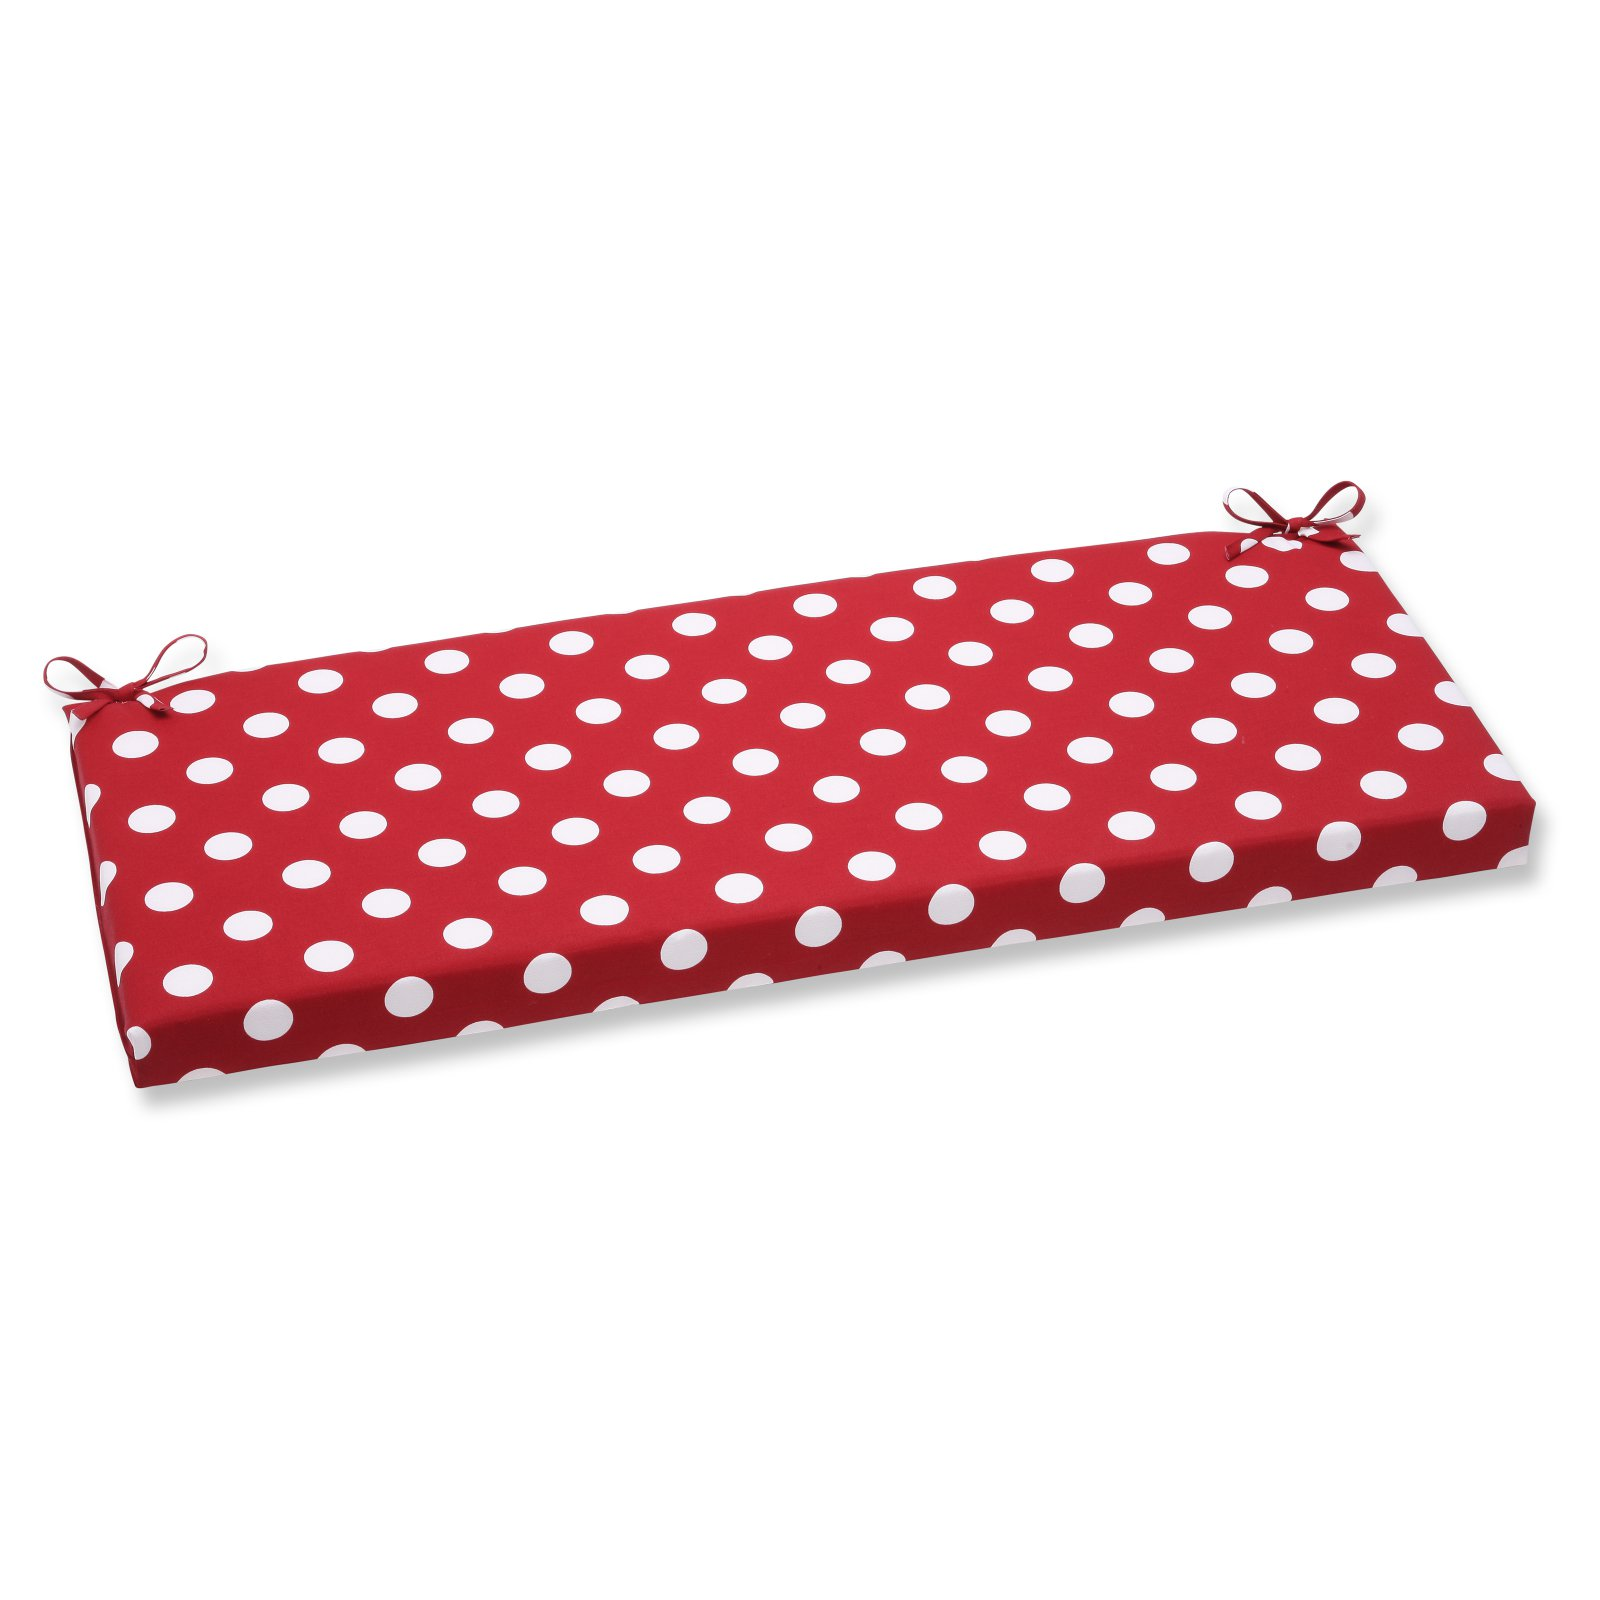 Pillow Perfect Outdoor/ Indoor Polka Dot Red Bench Cushion